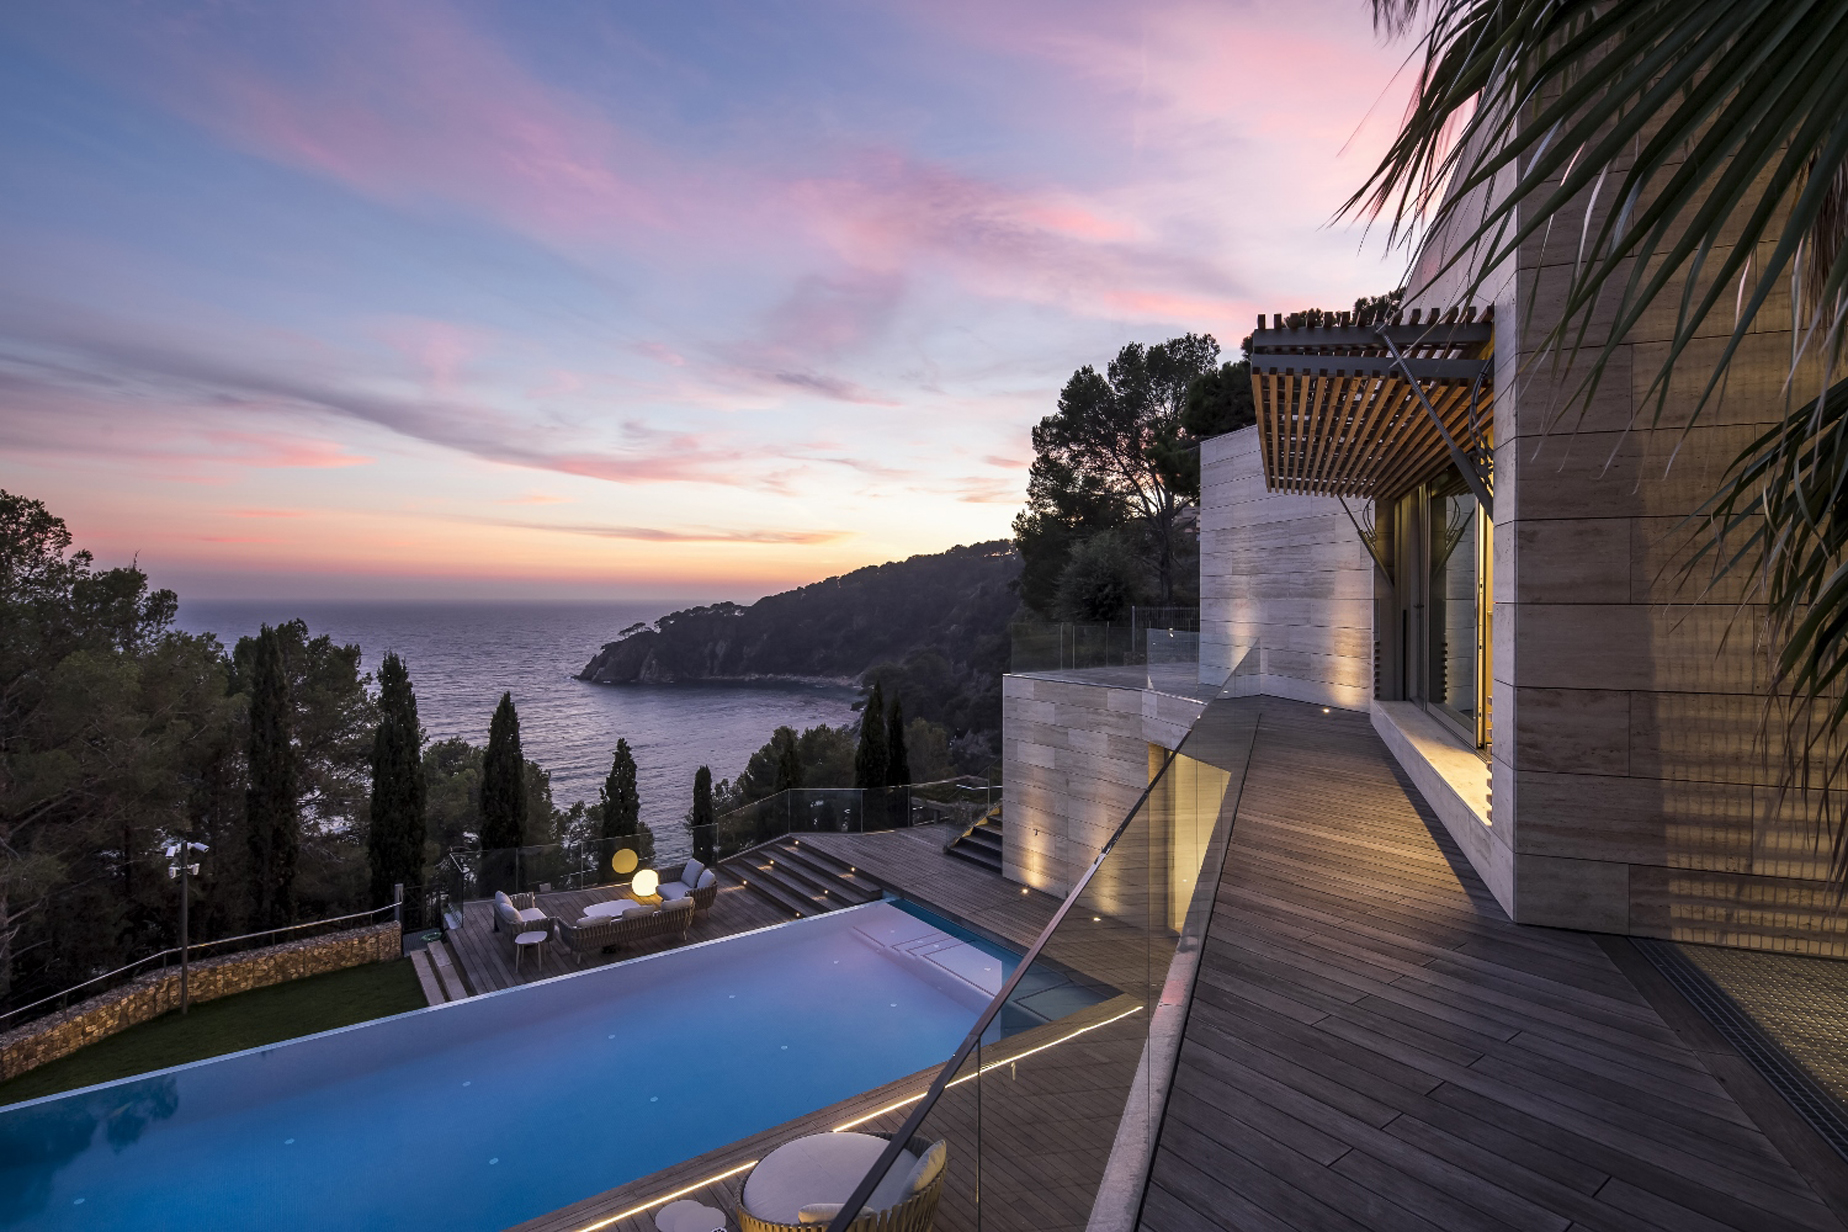 Single Family Home for Sale at Spectacular villa close to the beach Tossa De Mar, Costa Brava, 17320 Spain